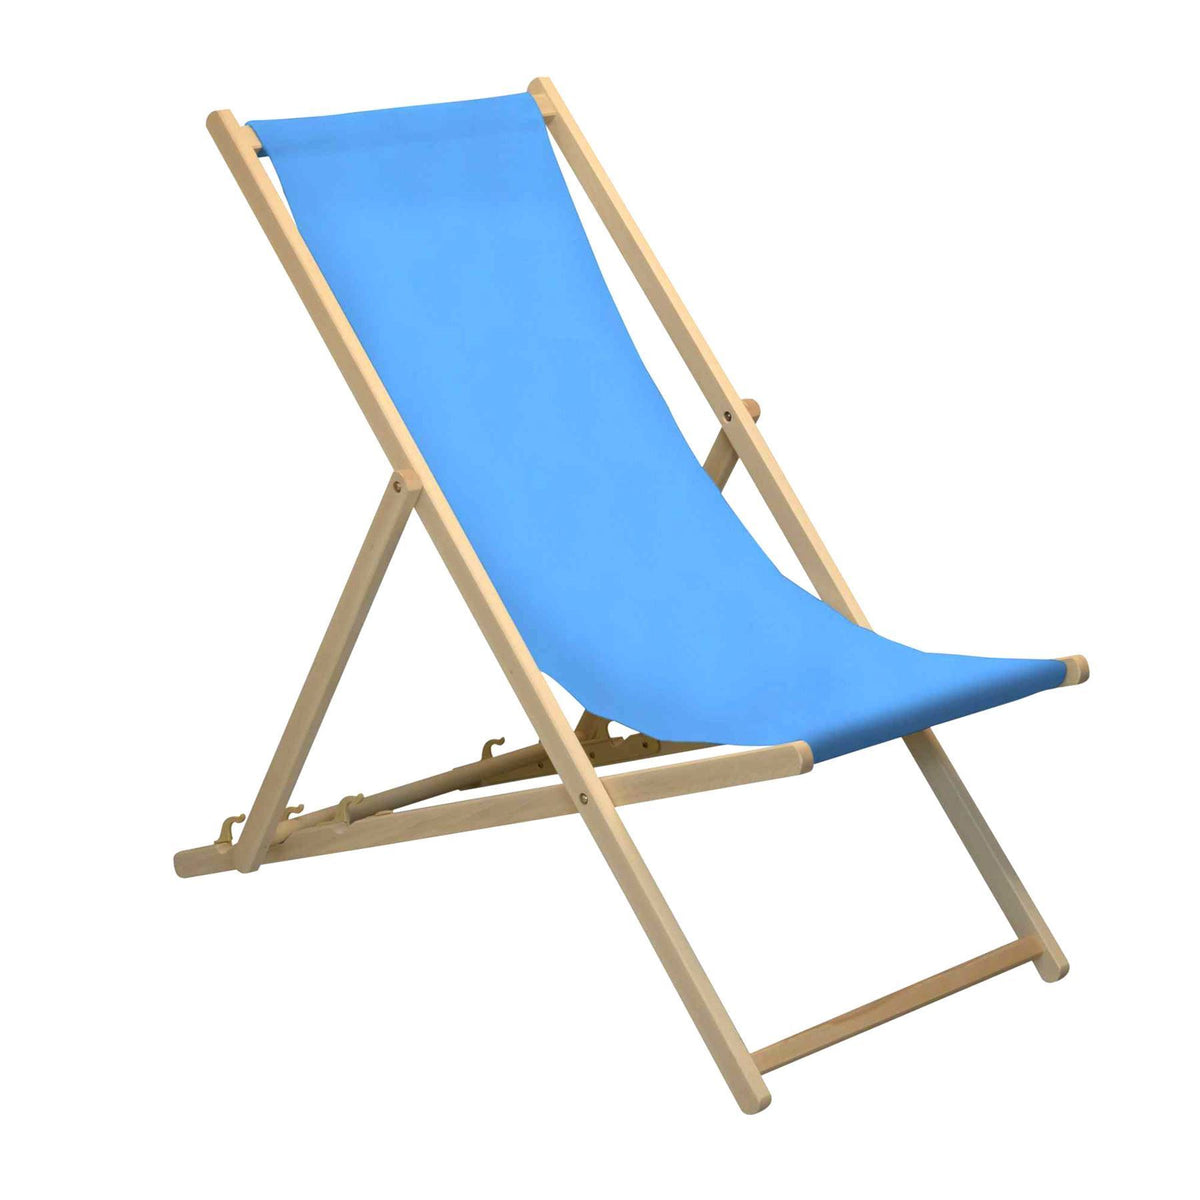 Easy to adjust - the Harbour Housewares Beach Deck Chair - Light Blue